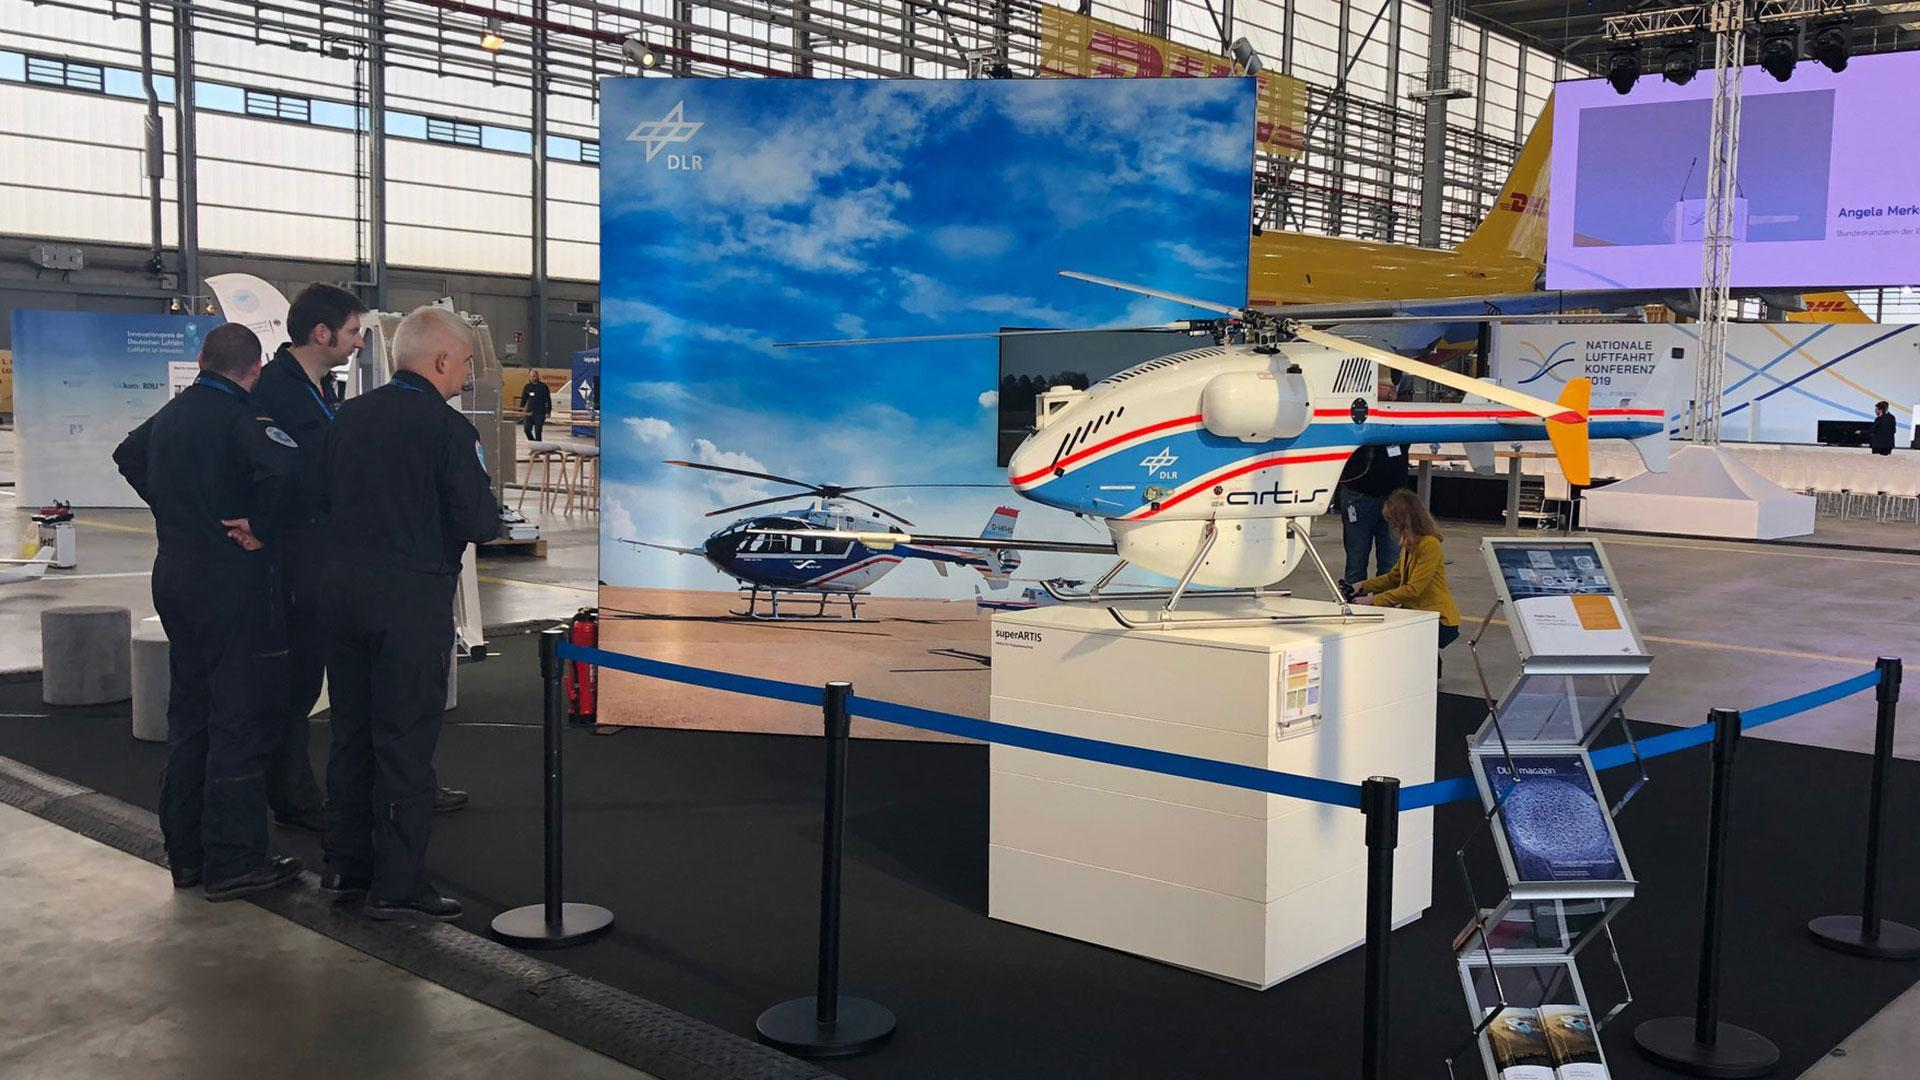 superARTIS, DLR's small uncrewed helicopter